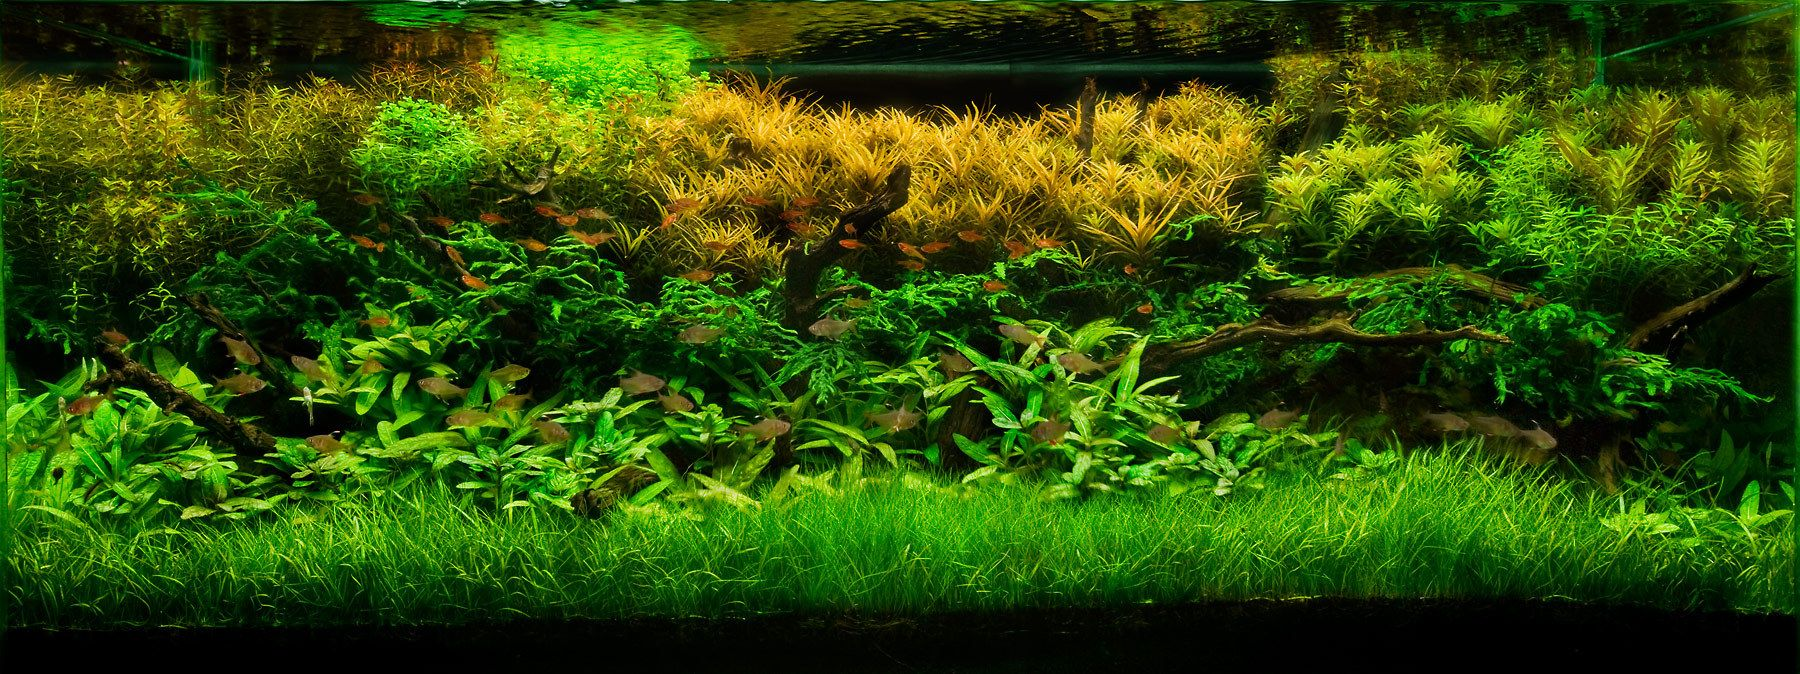 Fish aquarium with plants - Aquarium Design Group A Layout With Lush Stemmed Aquatic Plants